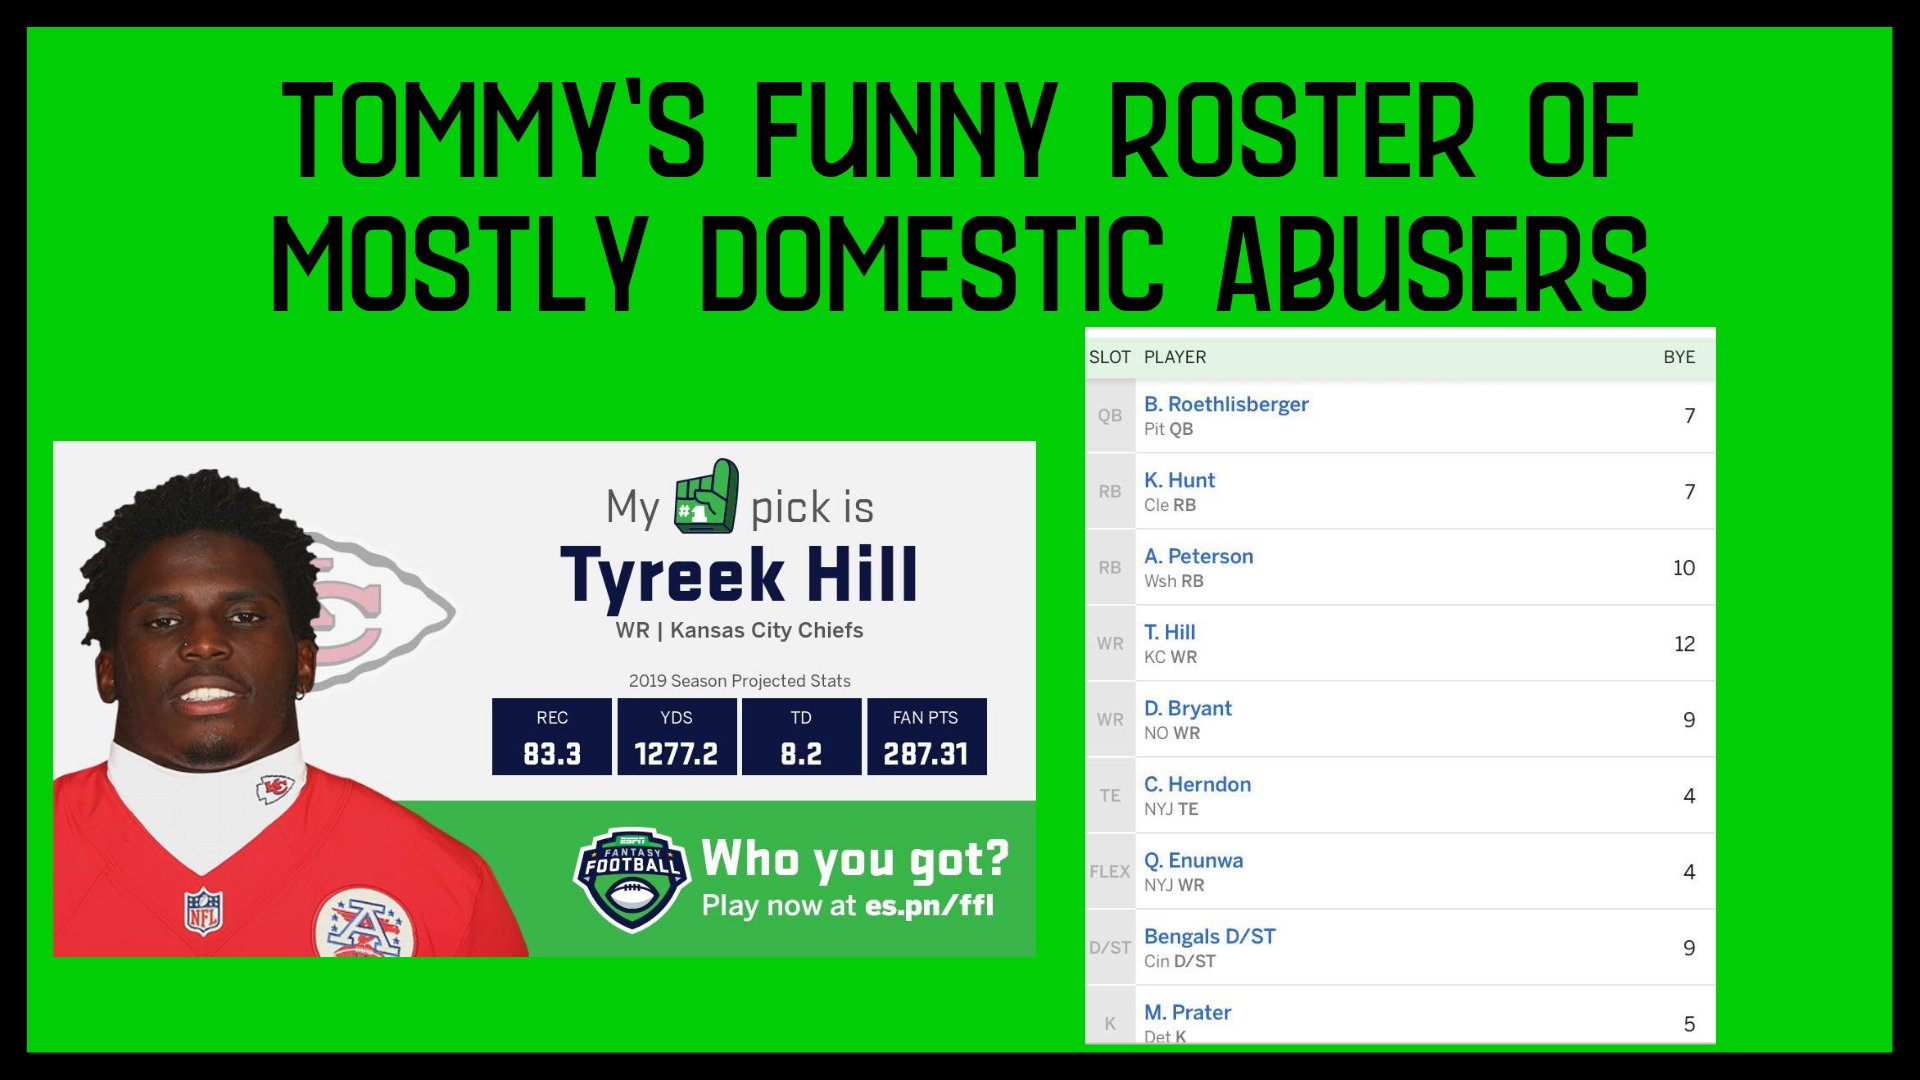 TOMMY'S FUNNY ROSTER OF MOSTLY DOMESTIC ABUSERS.png